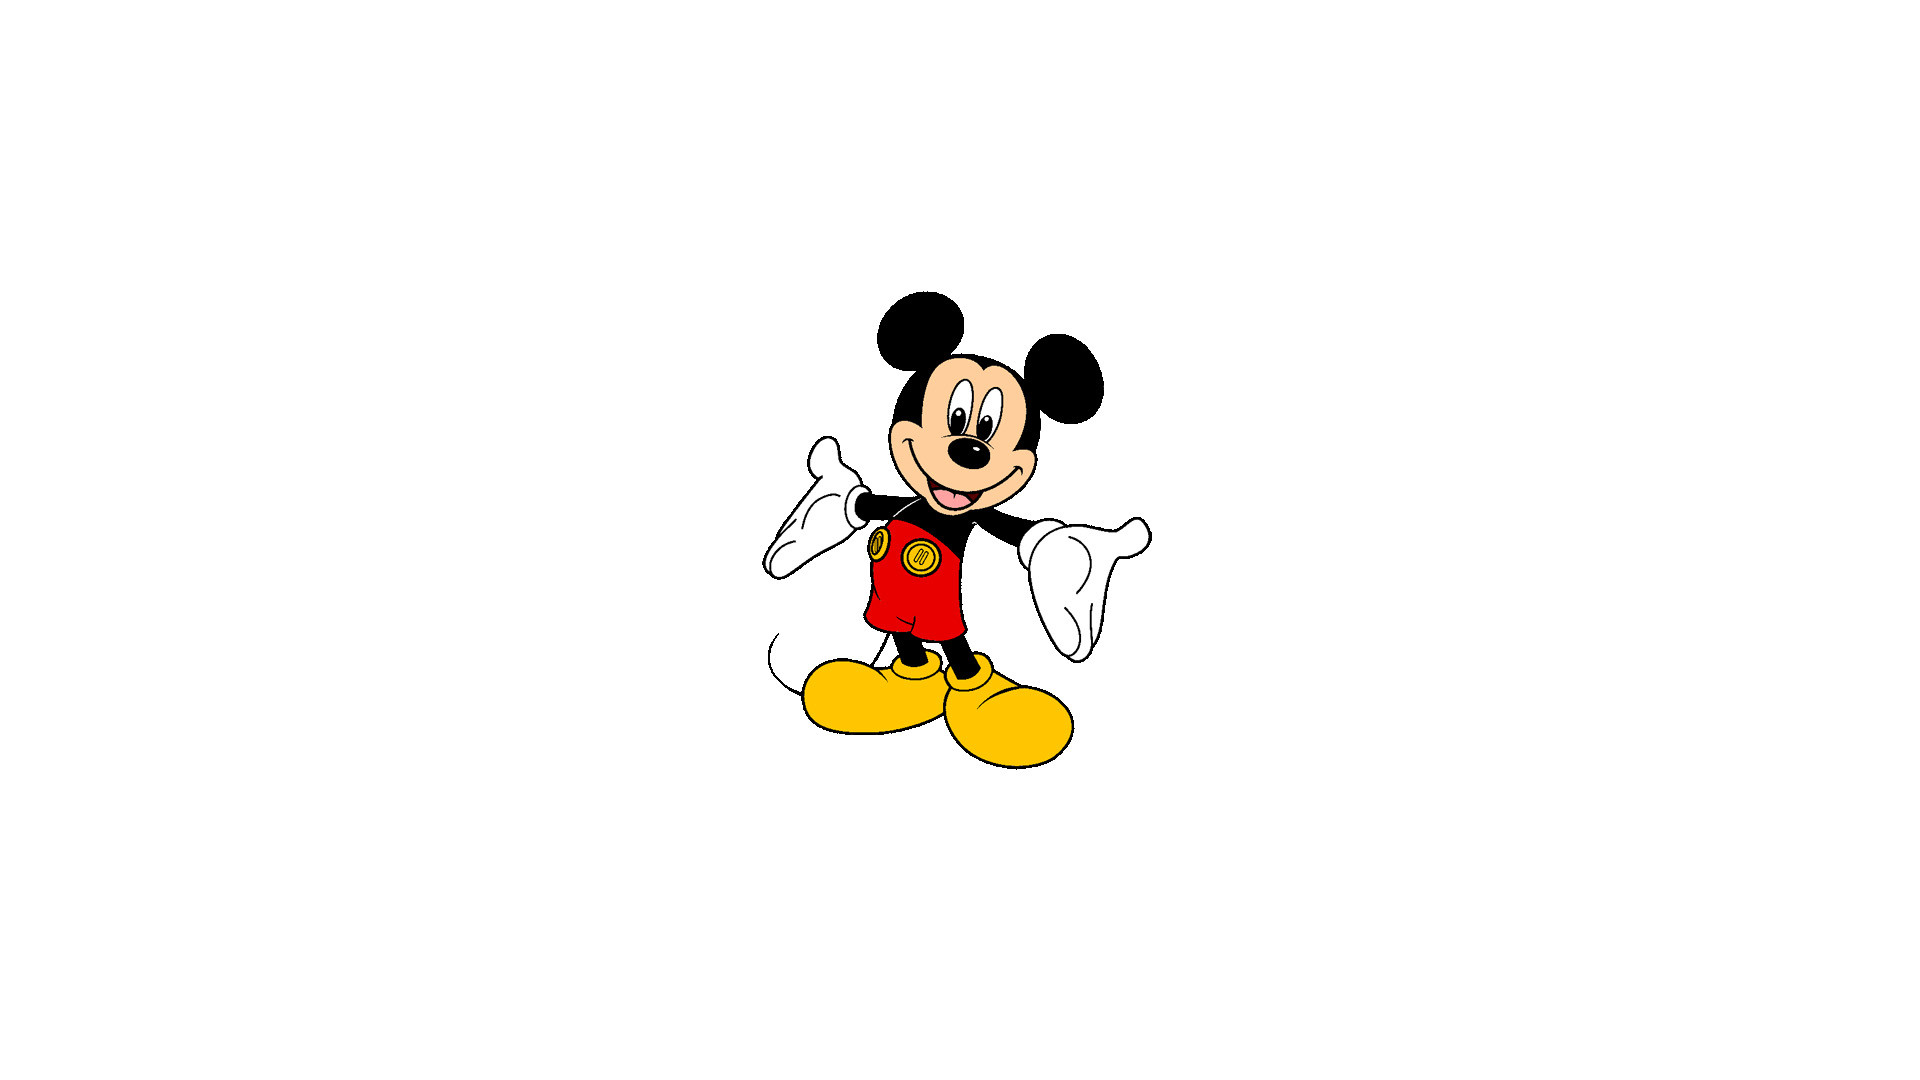 How to Draw Mickey Mouse with Easy Step by Step Drawing